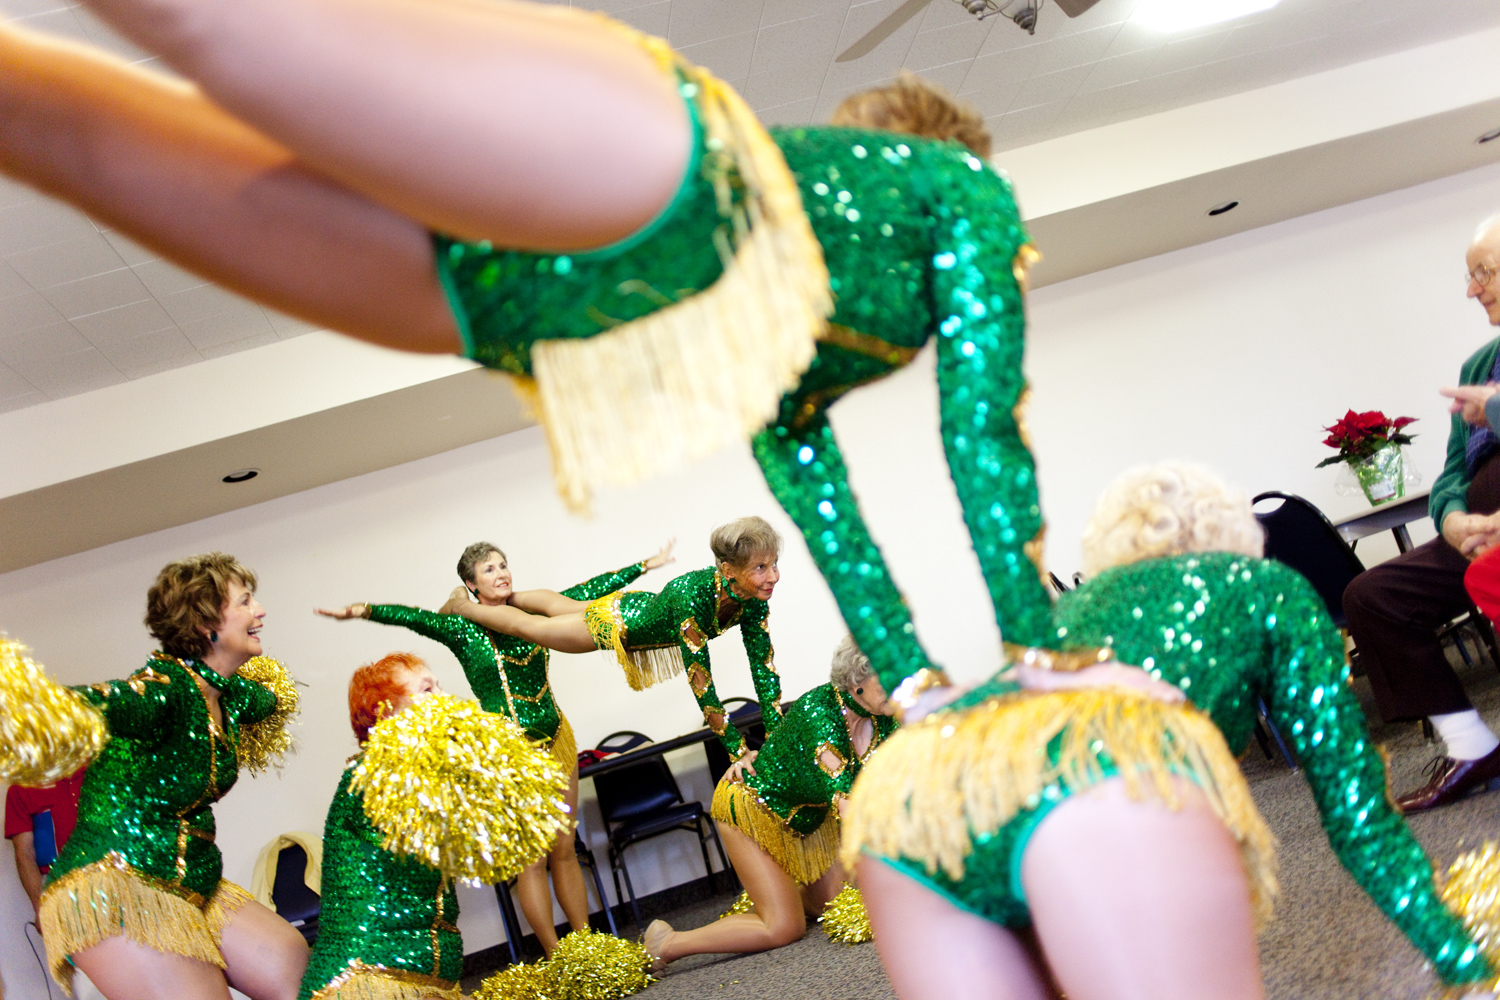 The Sun City Poms, aged 61-78, perform a routine for a crowd in Talisman Hall on December 12, 2009. Their routine includes an announcement that one is  never too old to perform and expand your horizons.